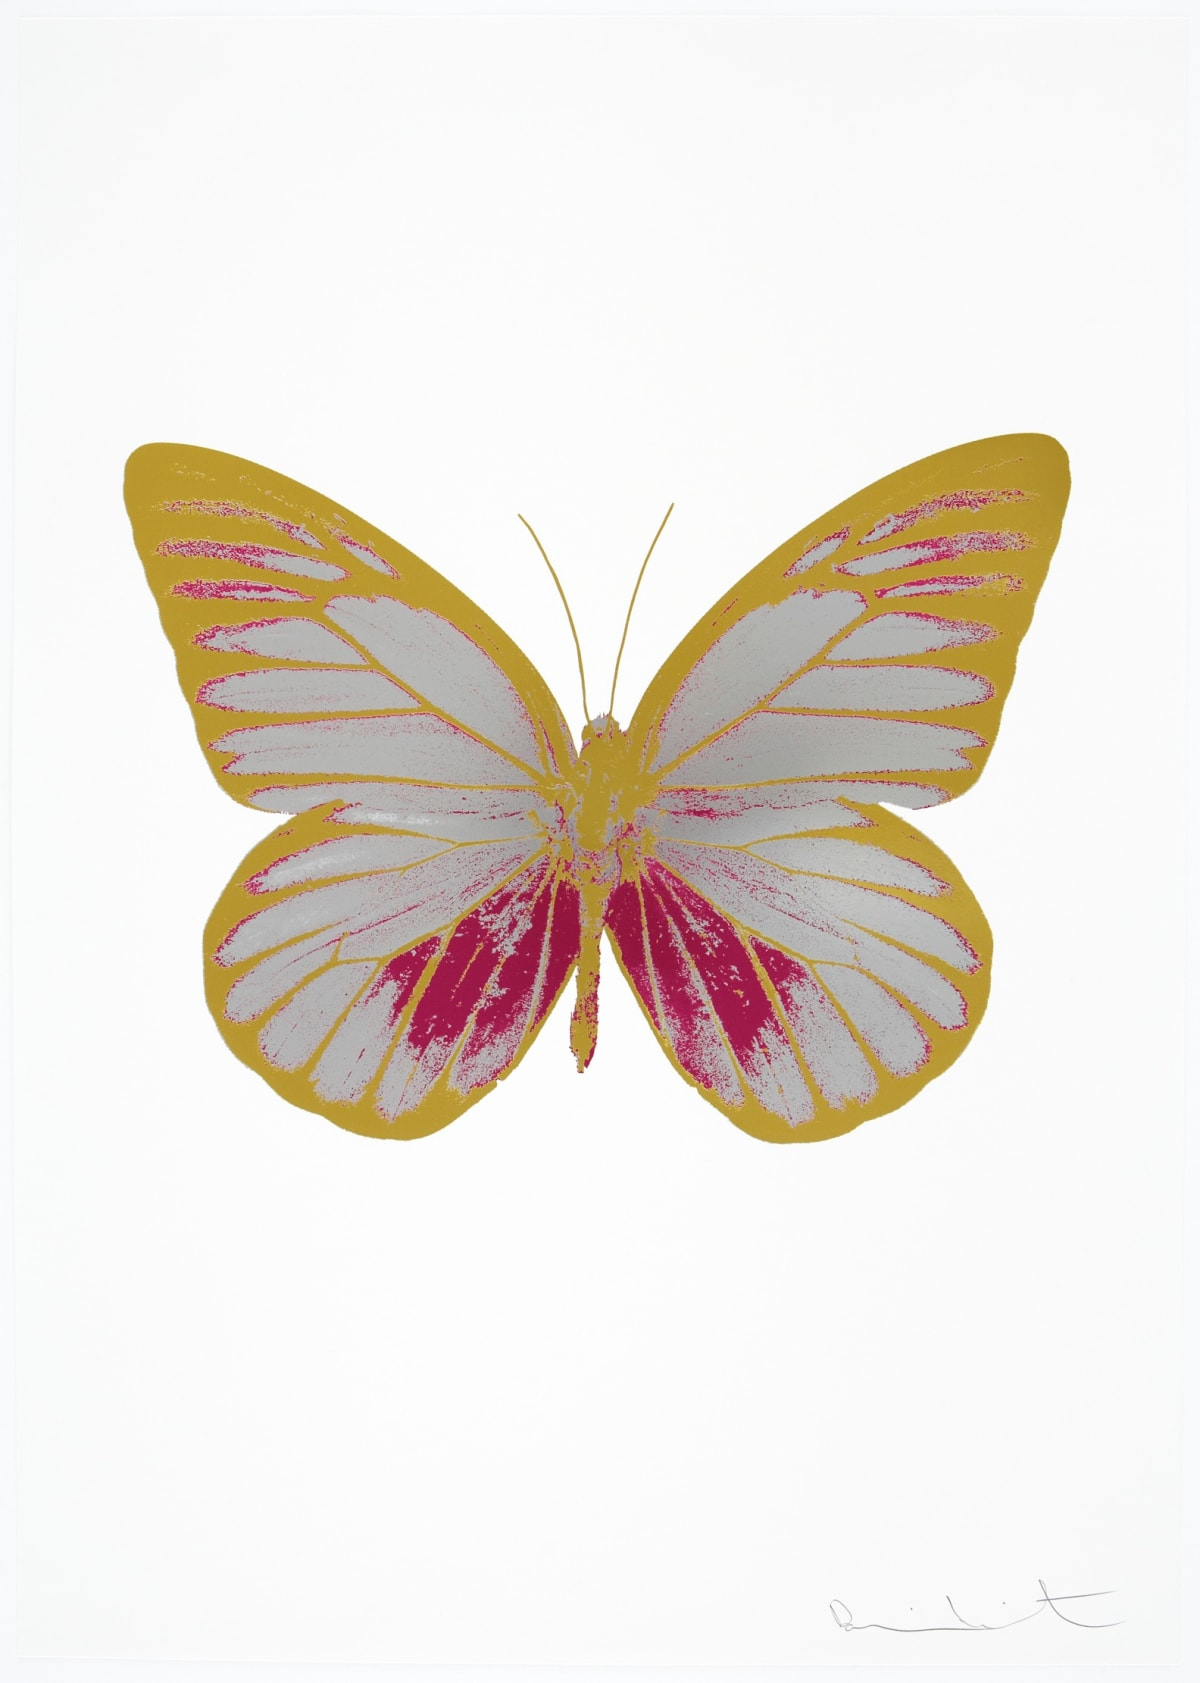 Damien Hirst The Souls I - Silver Gloss/Fuchsia Pink/Oriental Gold, 2010 3 colour foil block on 300gsm Arches 88 archival paper. Signed and numbered. Published by Paul Stolper and Other Criteria 72 x 51cm OC7748 / 659-11 Edition of 15